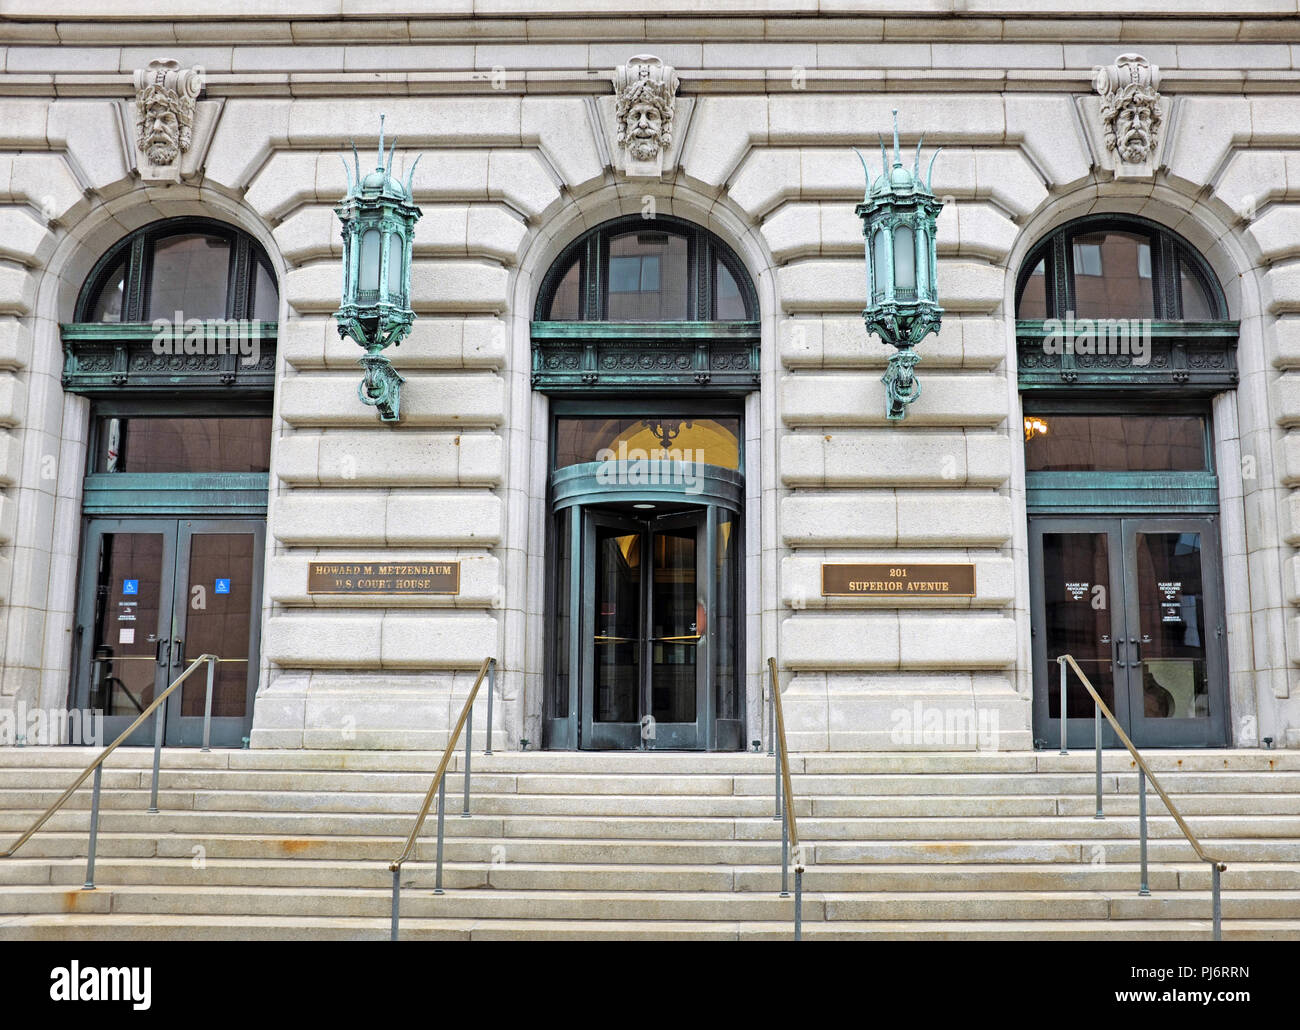 The Superior Avenue entrance of the Metzenbaum U.S. Courthouse in downtown Cleveland, Ohio was opened in 1910 as the Old Federal Building. - Stock Image